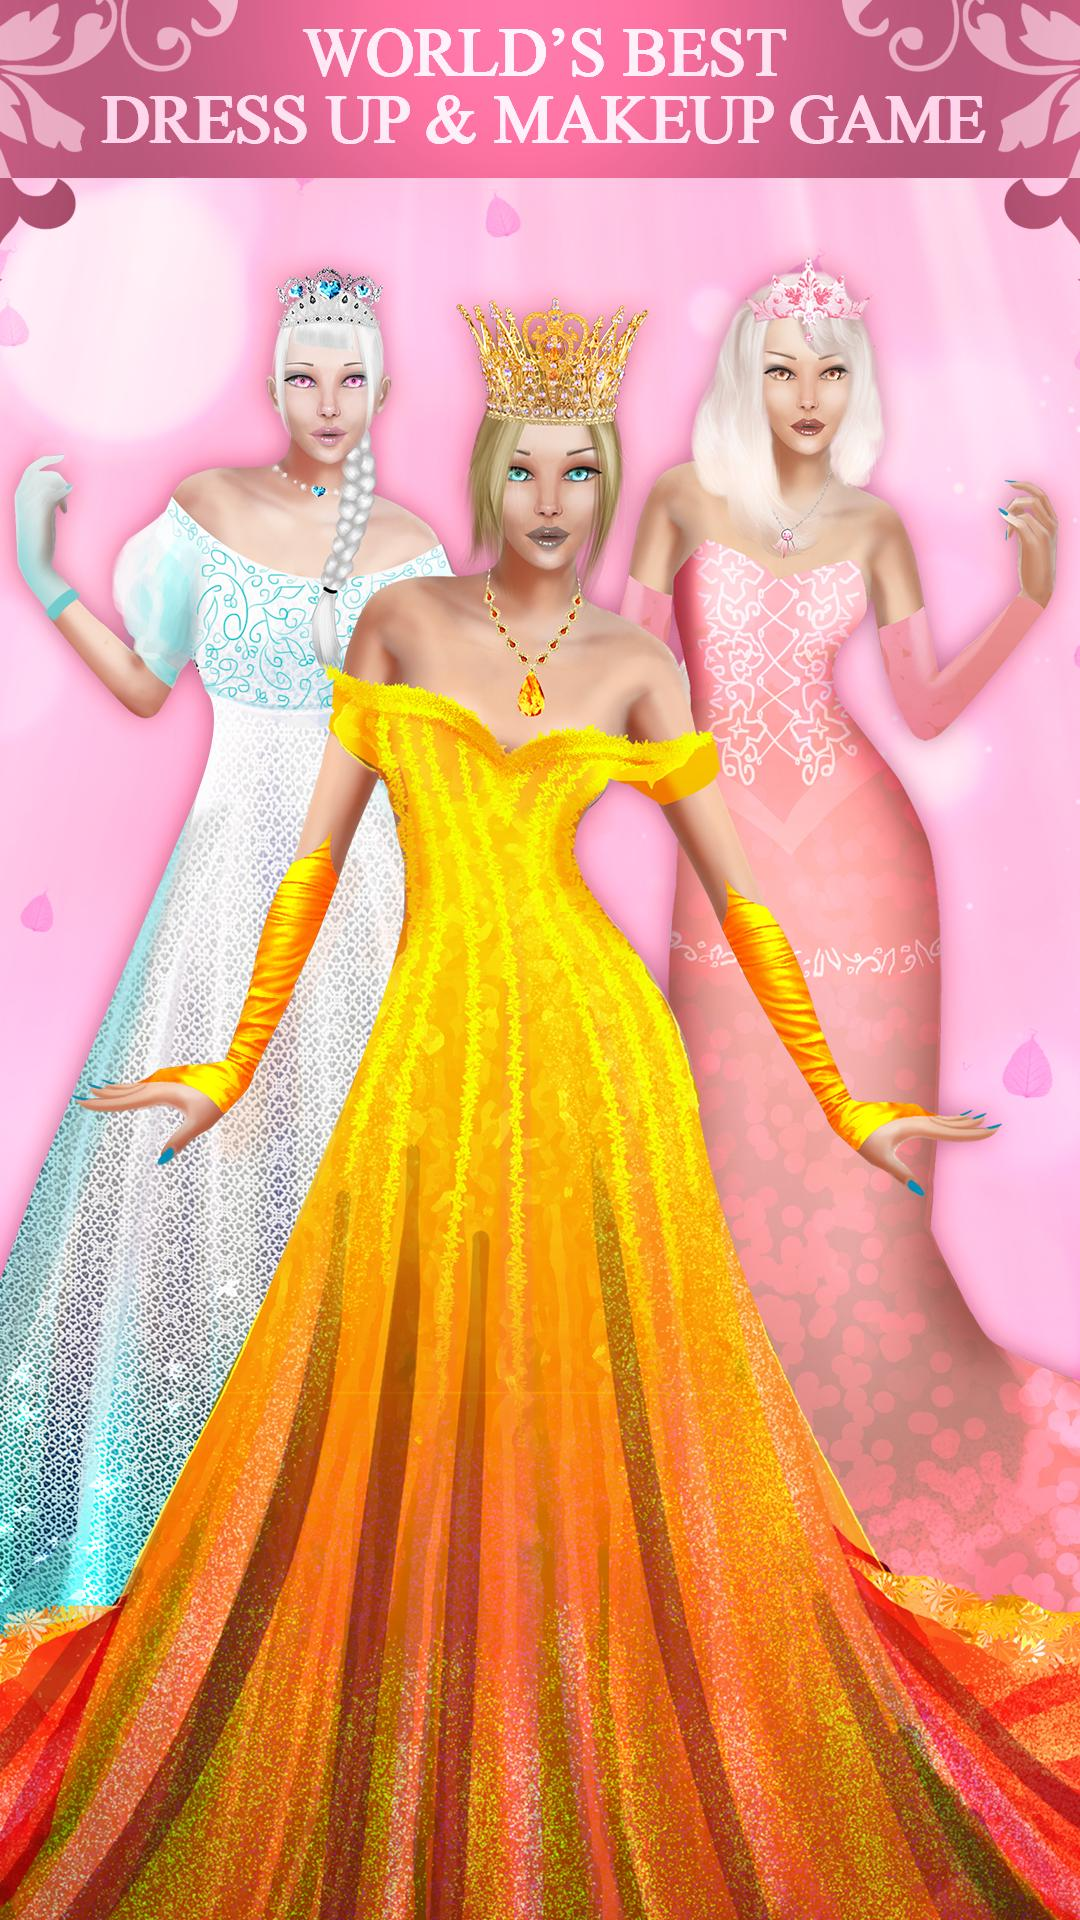 Fashion Dress Up Game Clothes Dresses Makeups For Android Apk Download